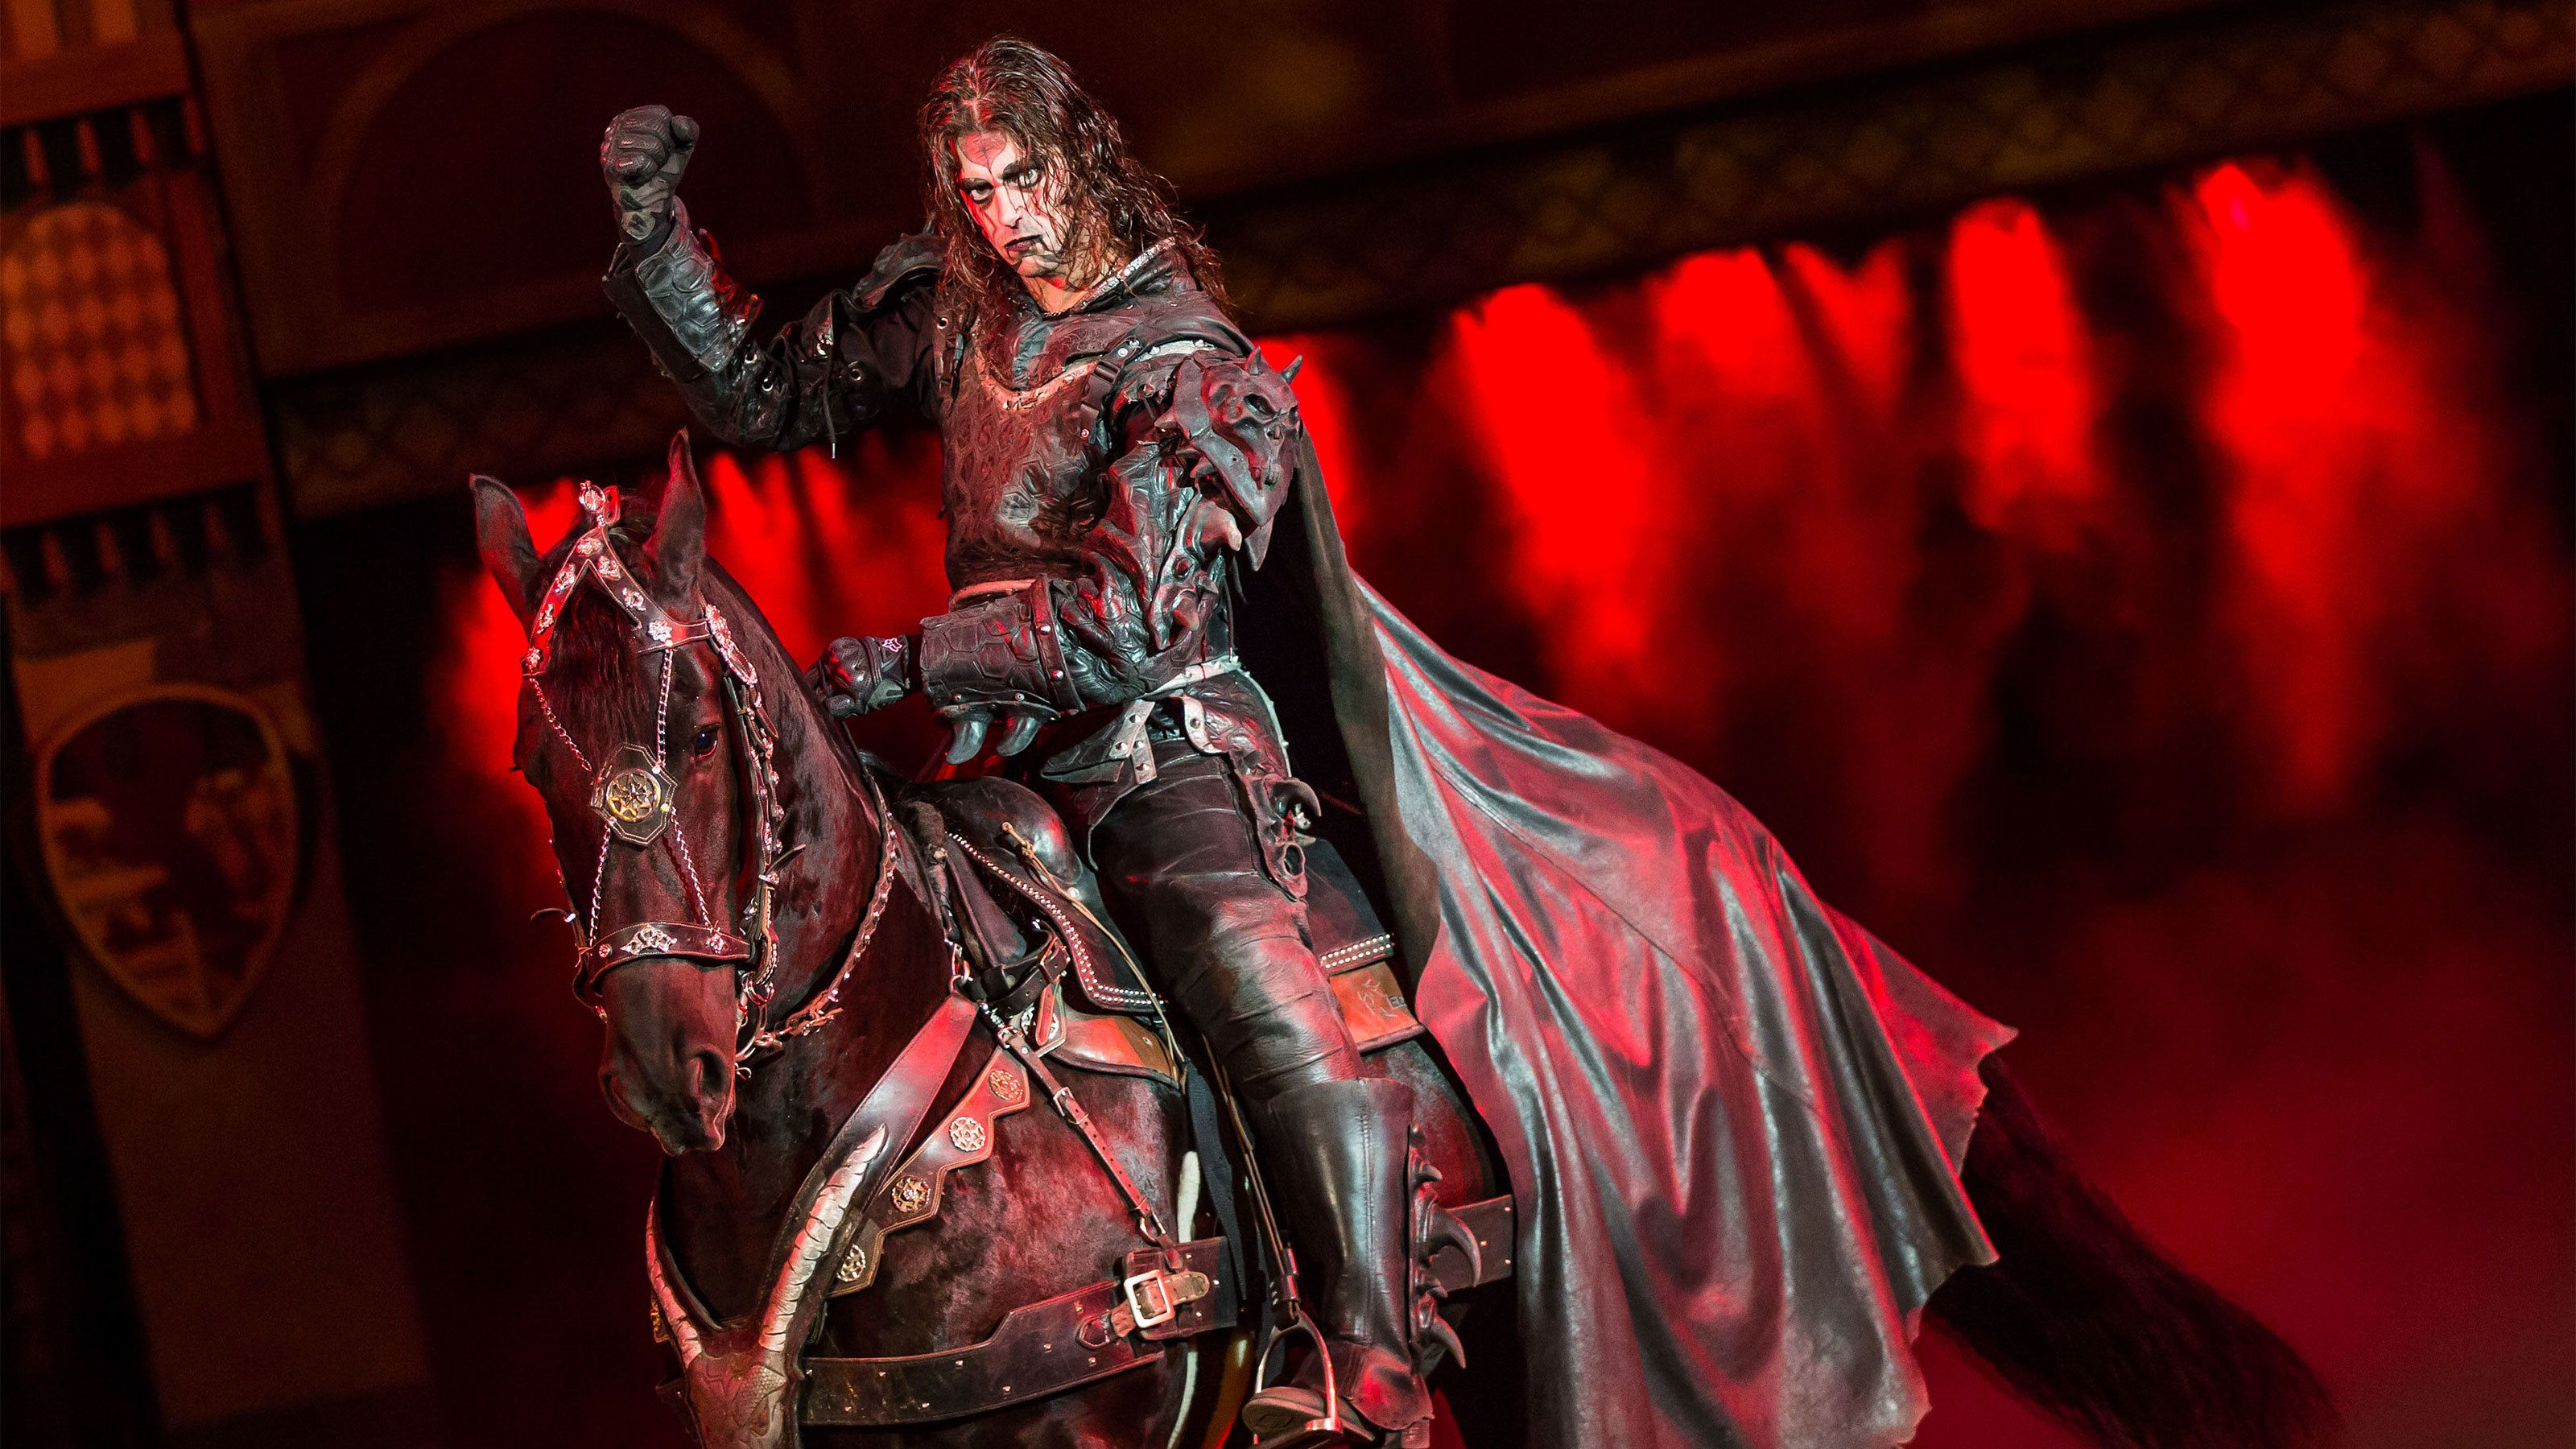 Villanous knight on horseback at the tournament of kings dinner show at the Excalibur hotel